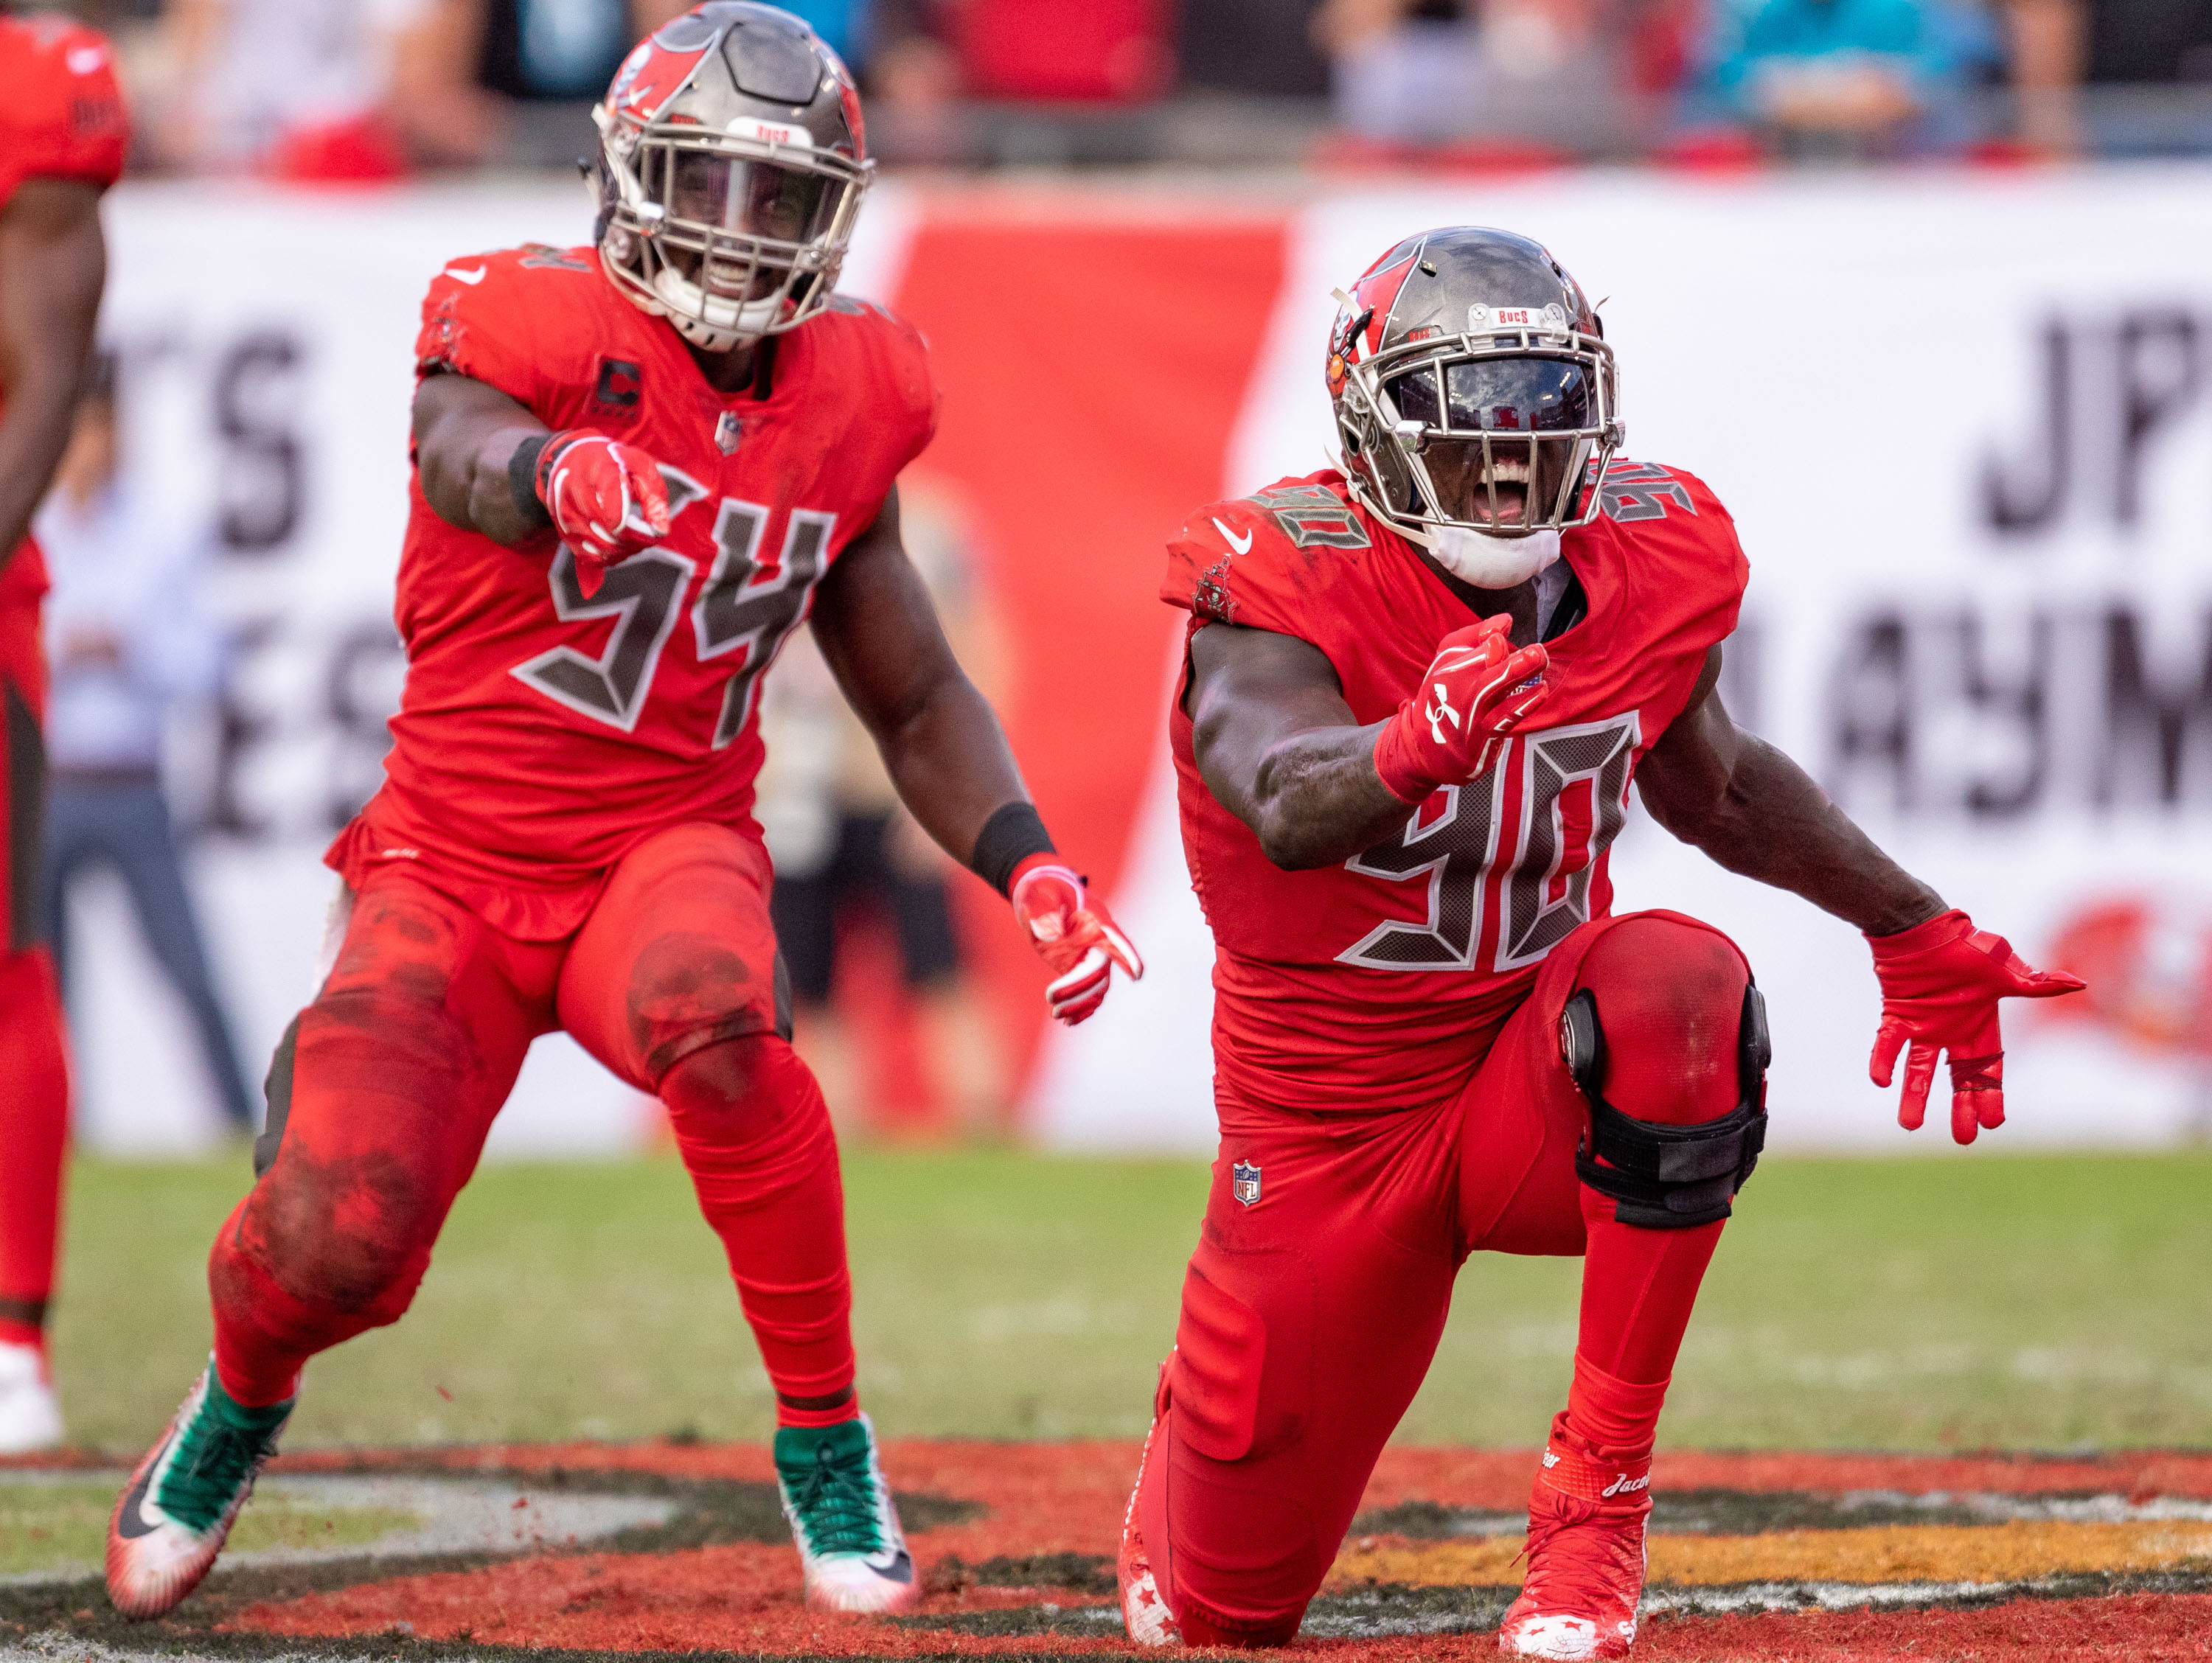 tampa bay buccaneers release new uniforms for 2020 season sportzbonanza tampa bay buccaneers release new